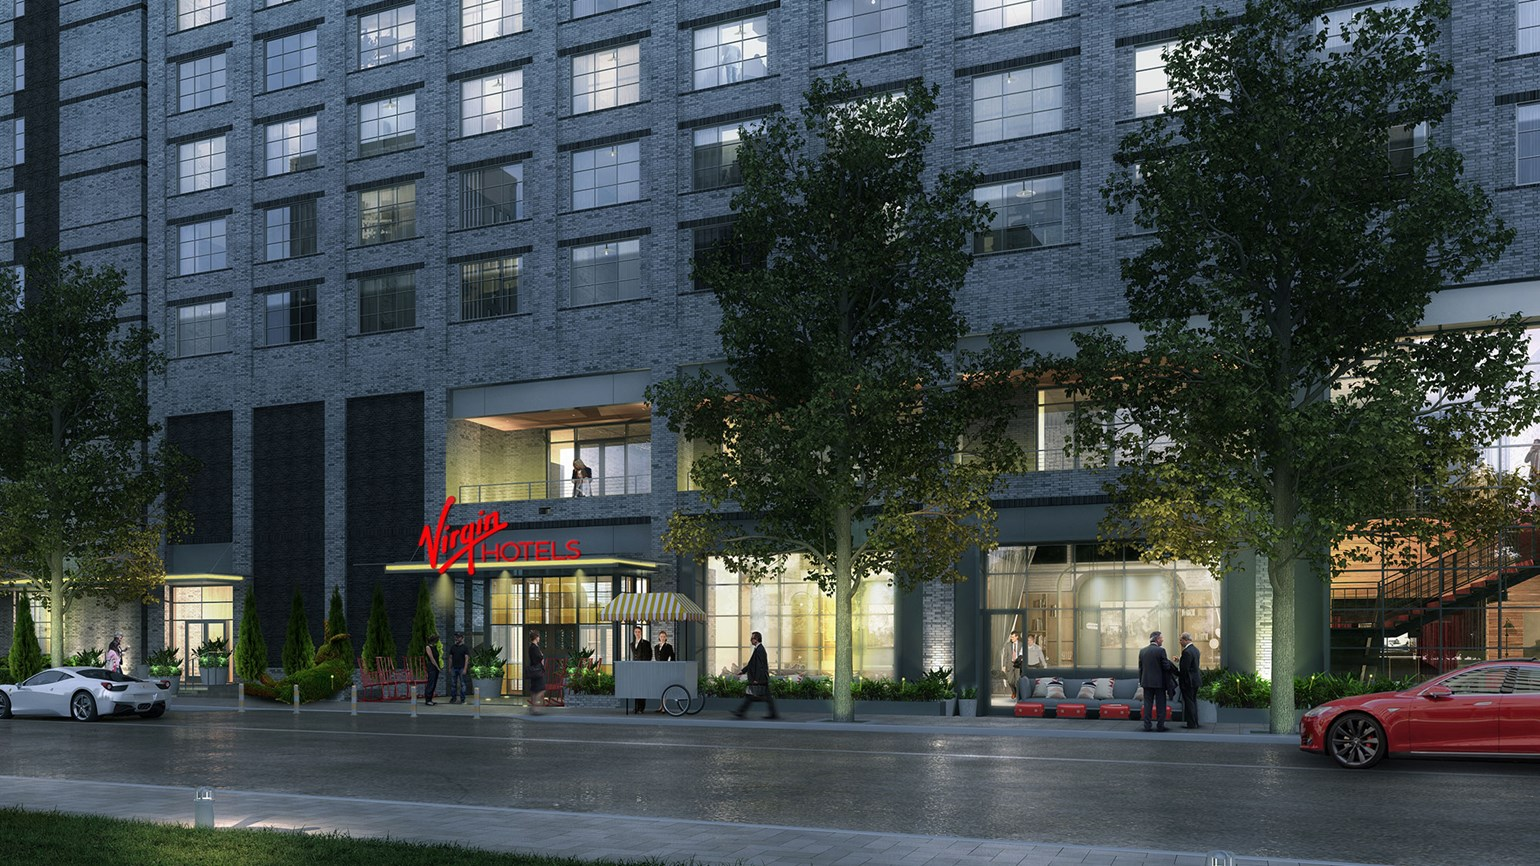 Virgin Hotels Nashville opens